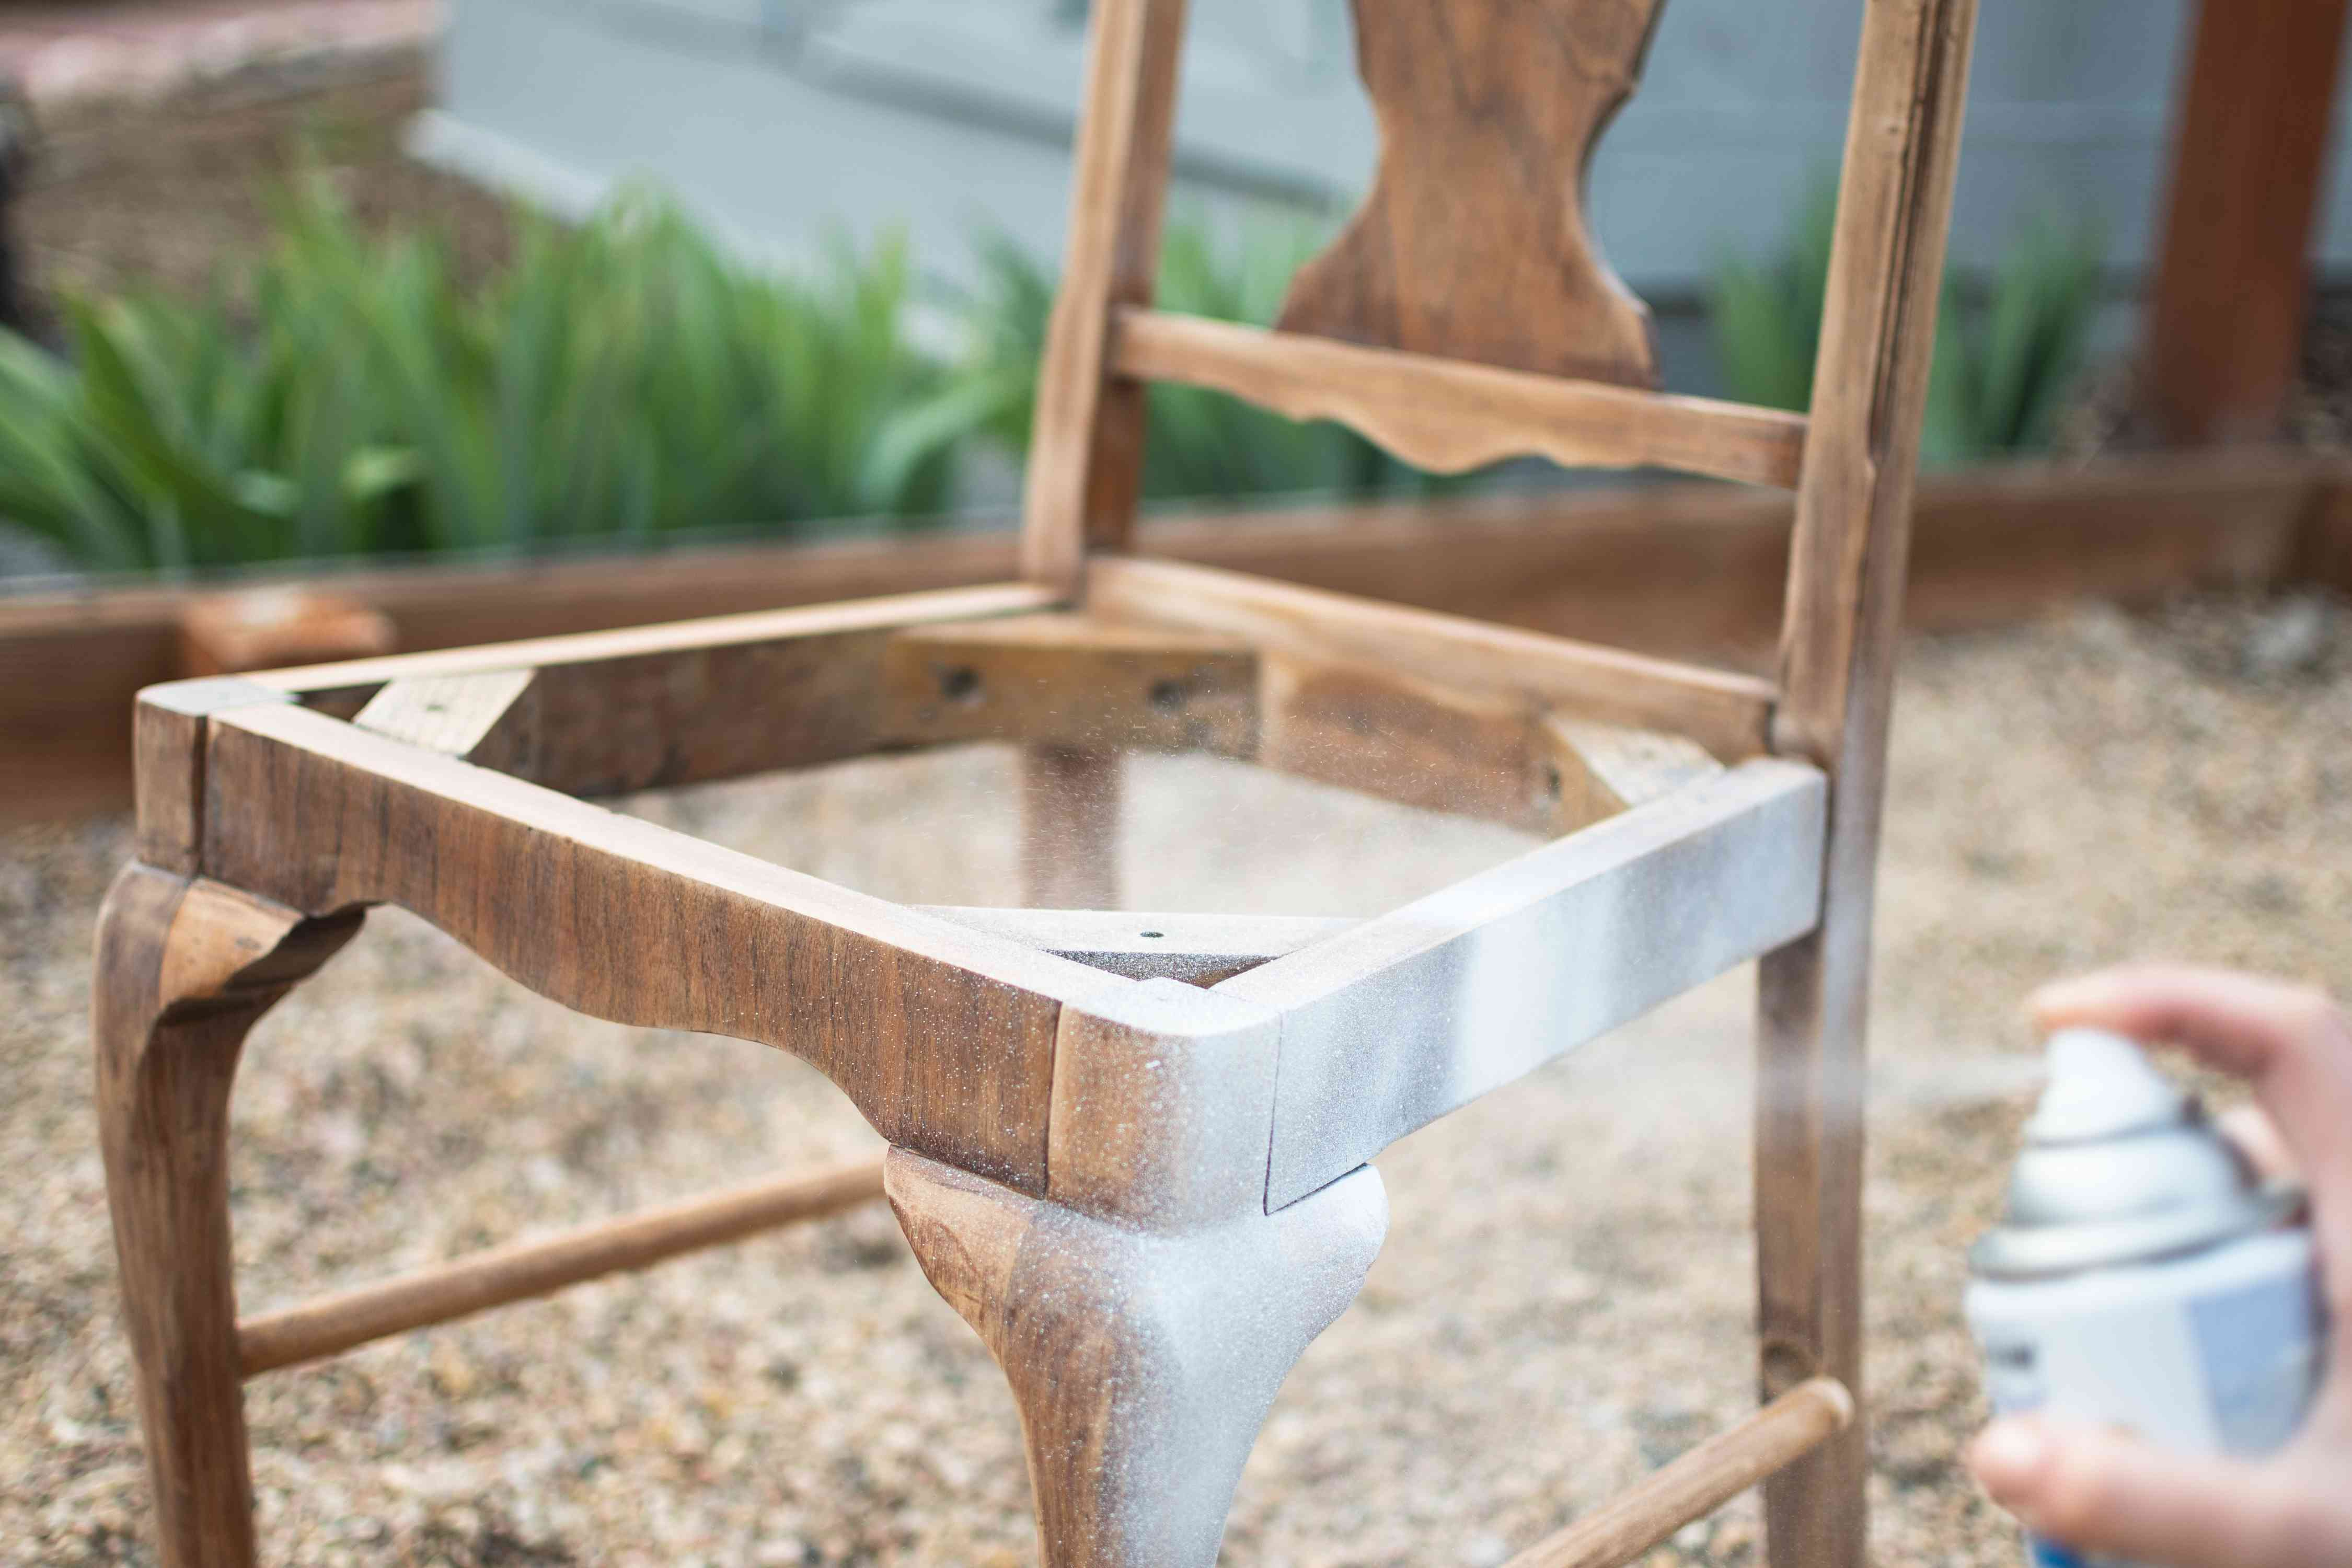 Sanded wooden chair spray painted with shite primer